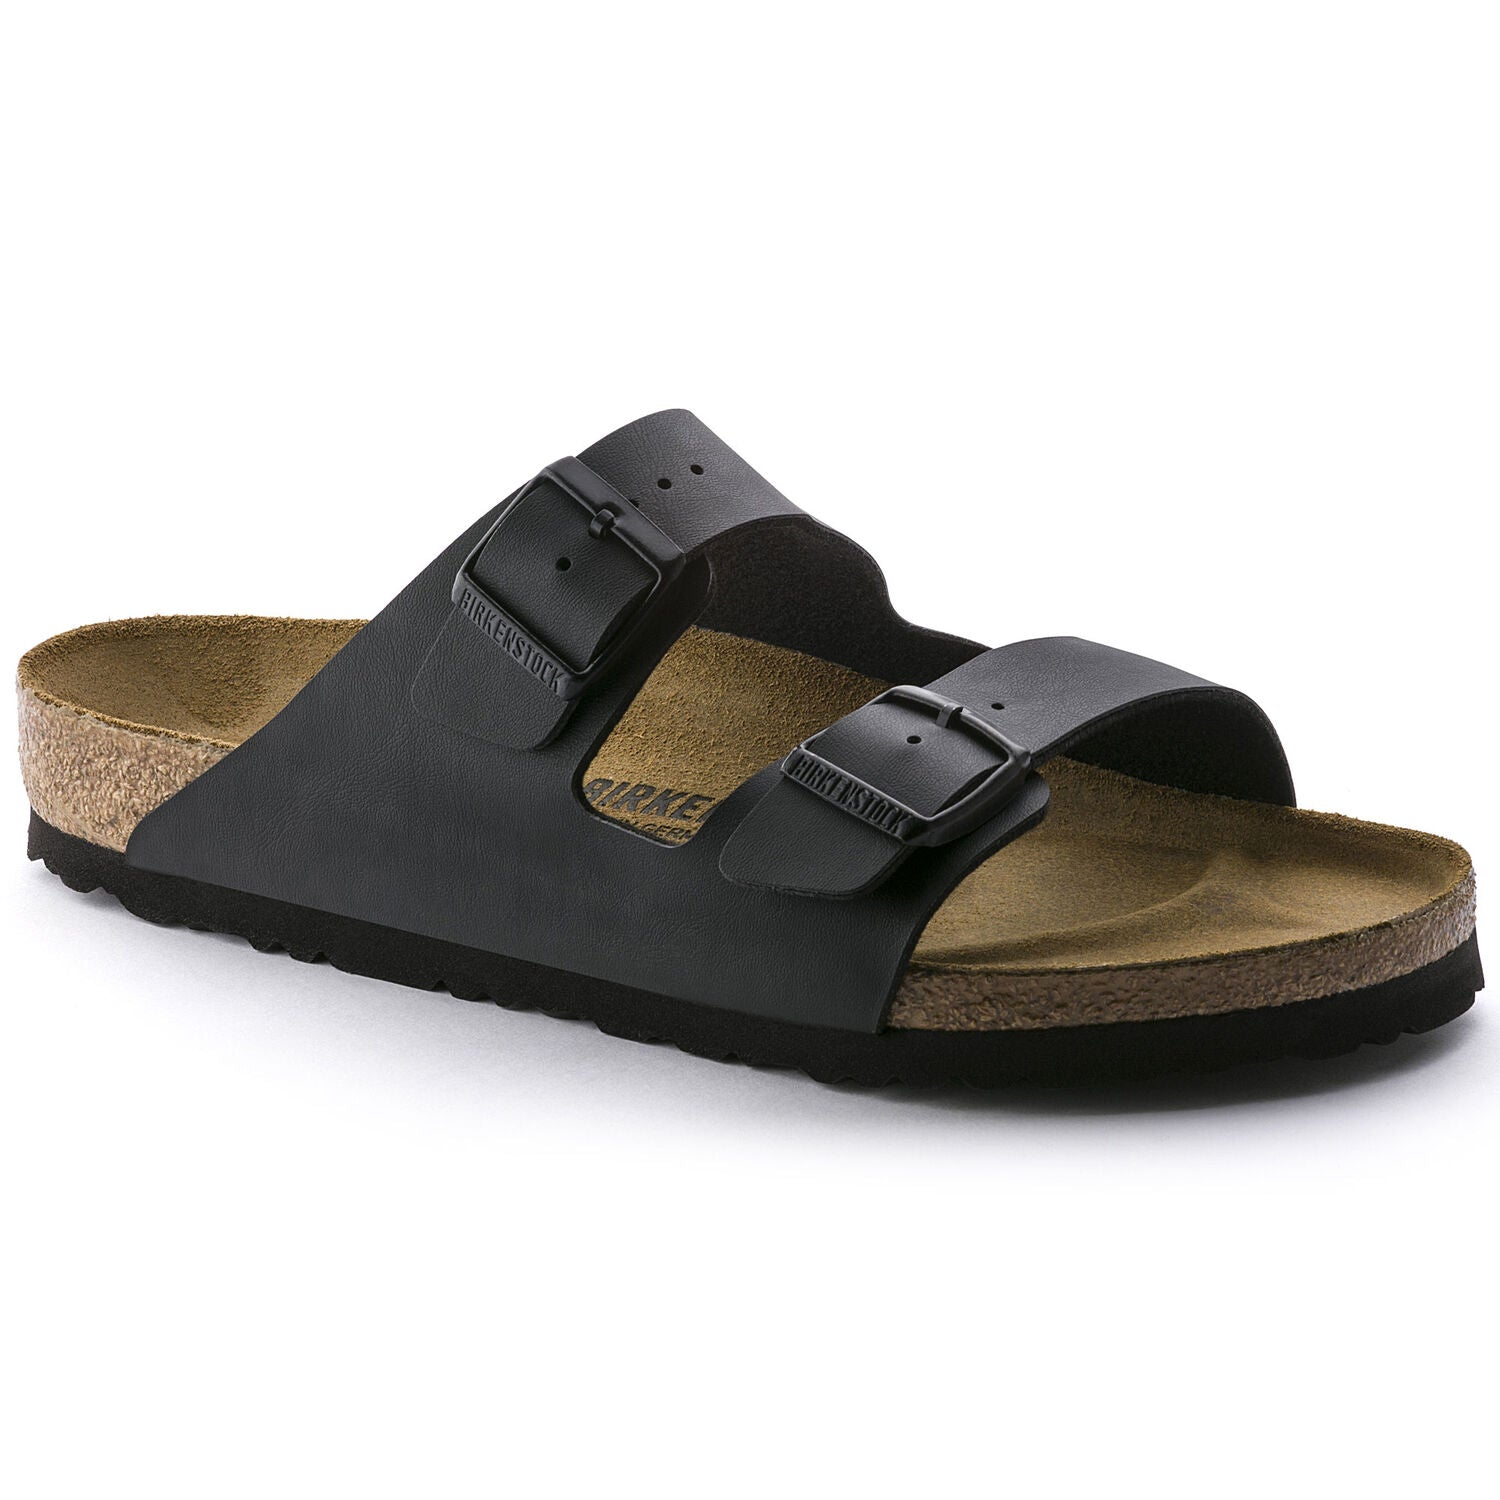 ARIZONA BIRKO-FLOR - BLACK (Regular fit)